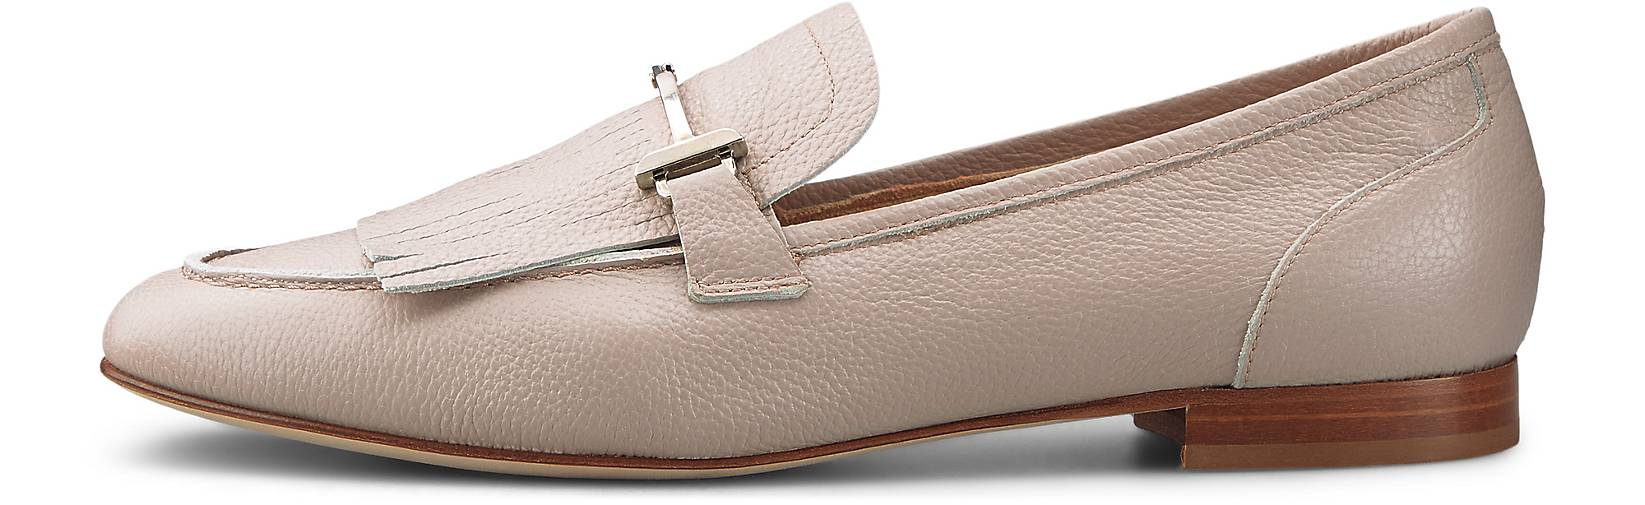 Luca Grossi Loafer SILVIA 15